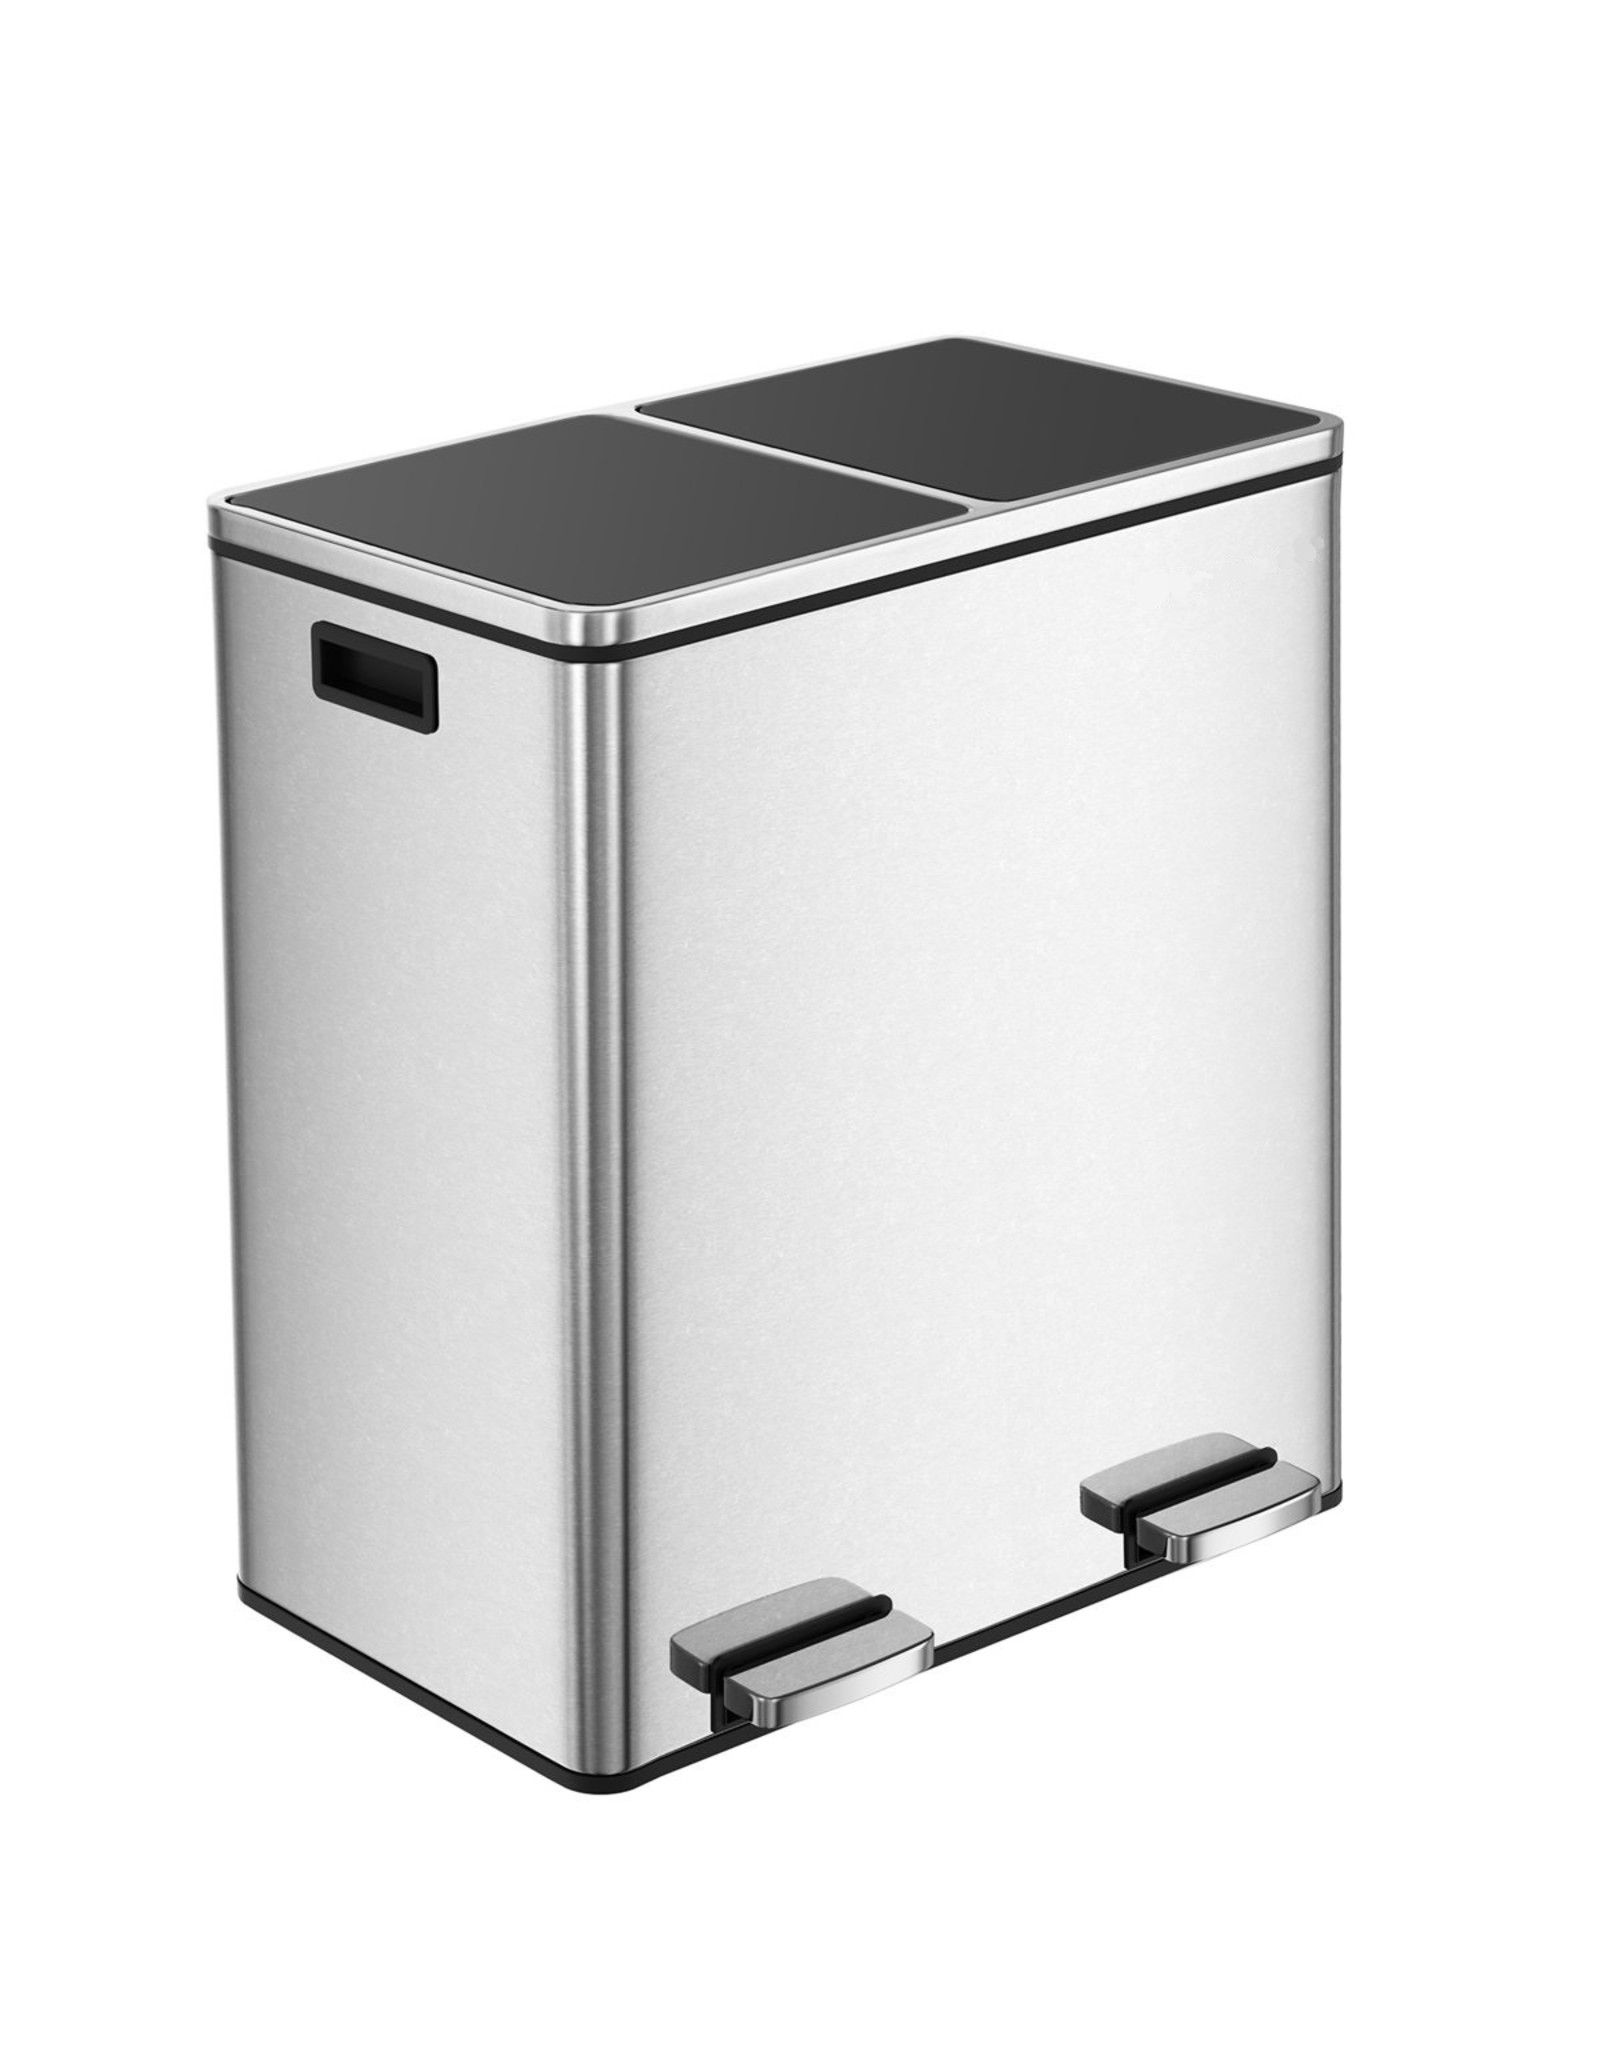 Parya Home Trash Can 60L - Stainless Steel - Waste separation system